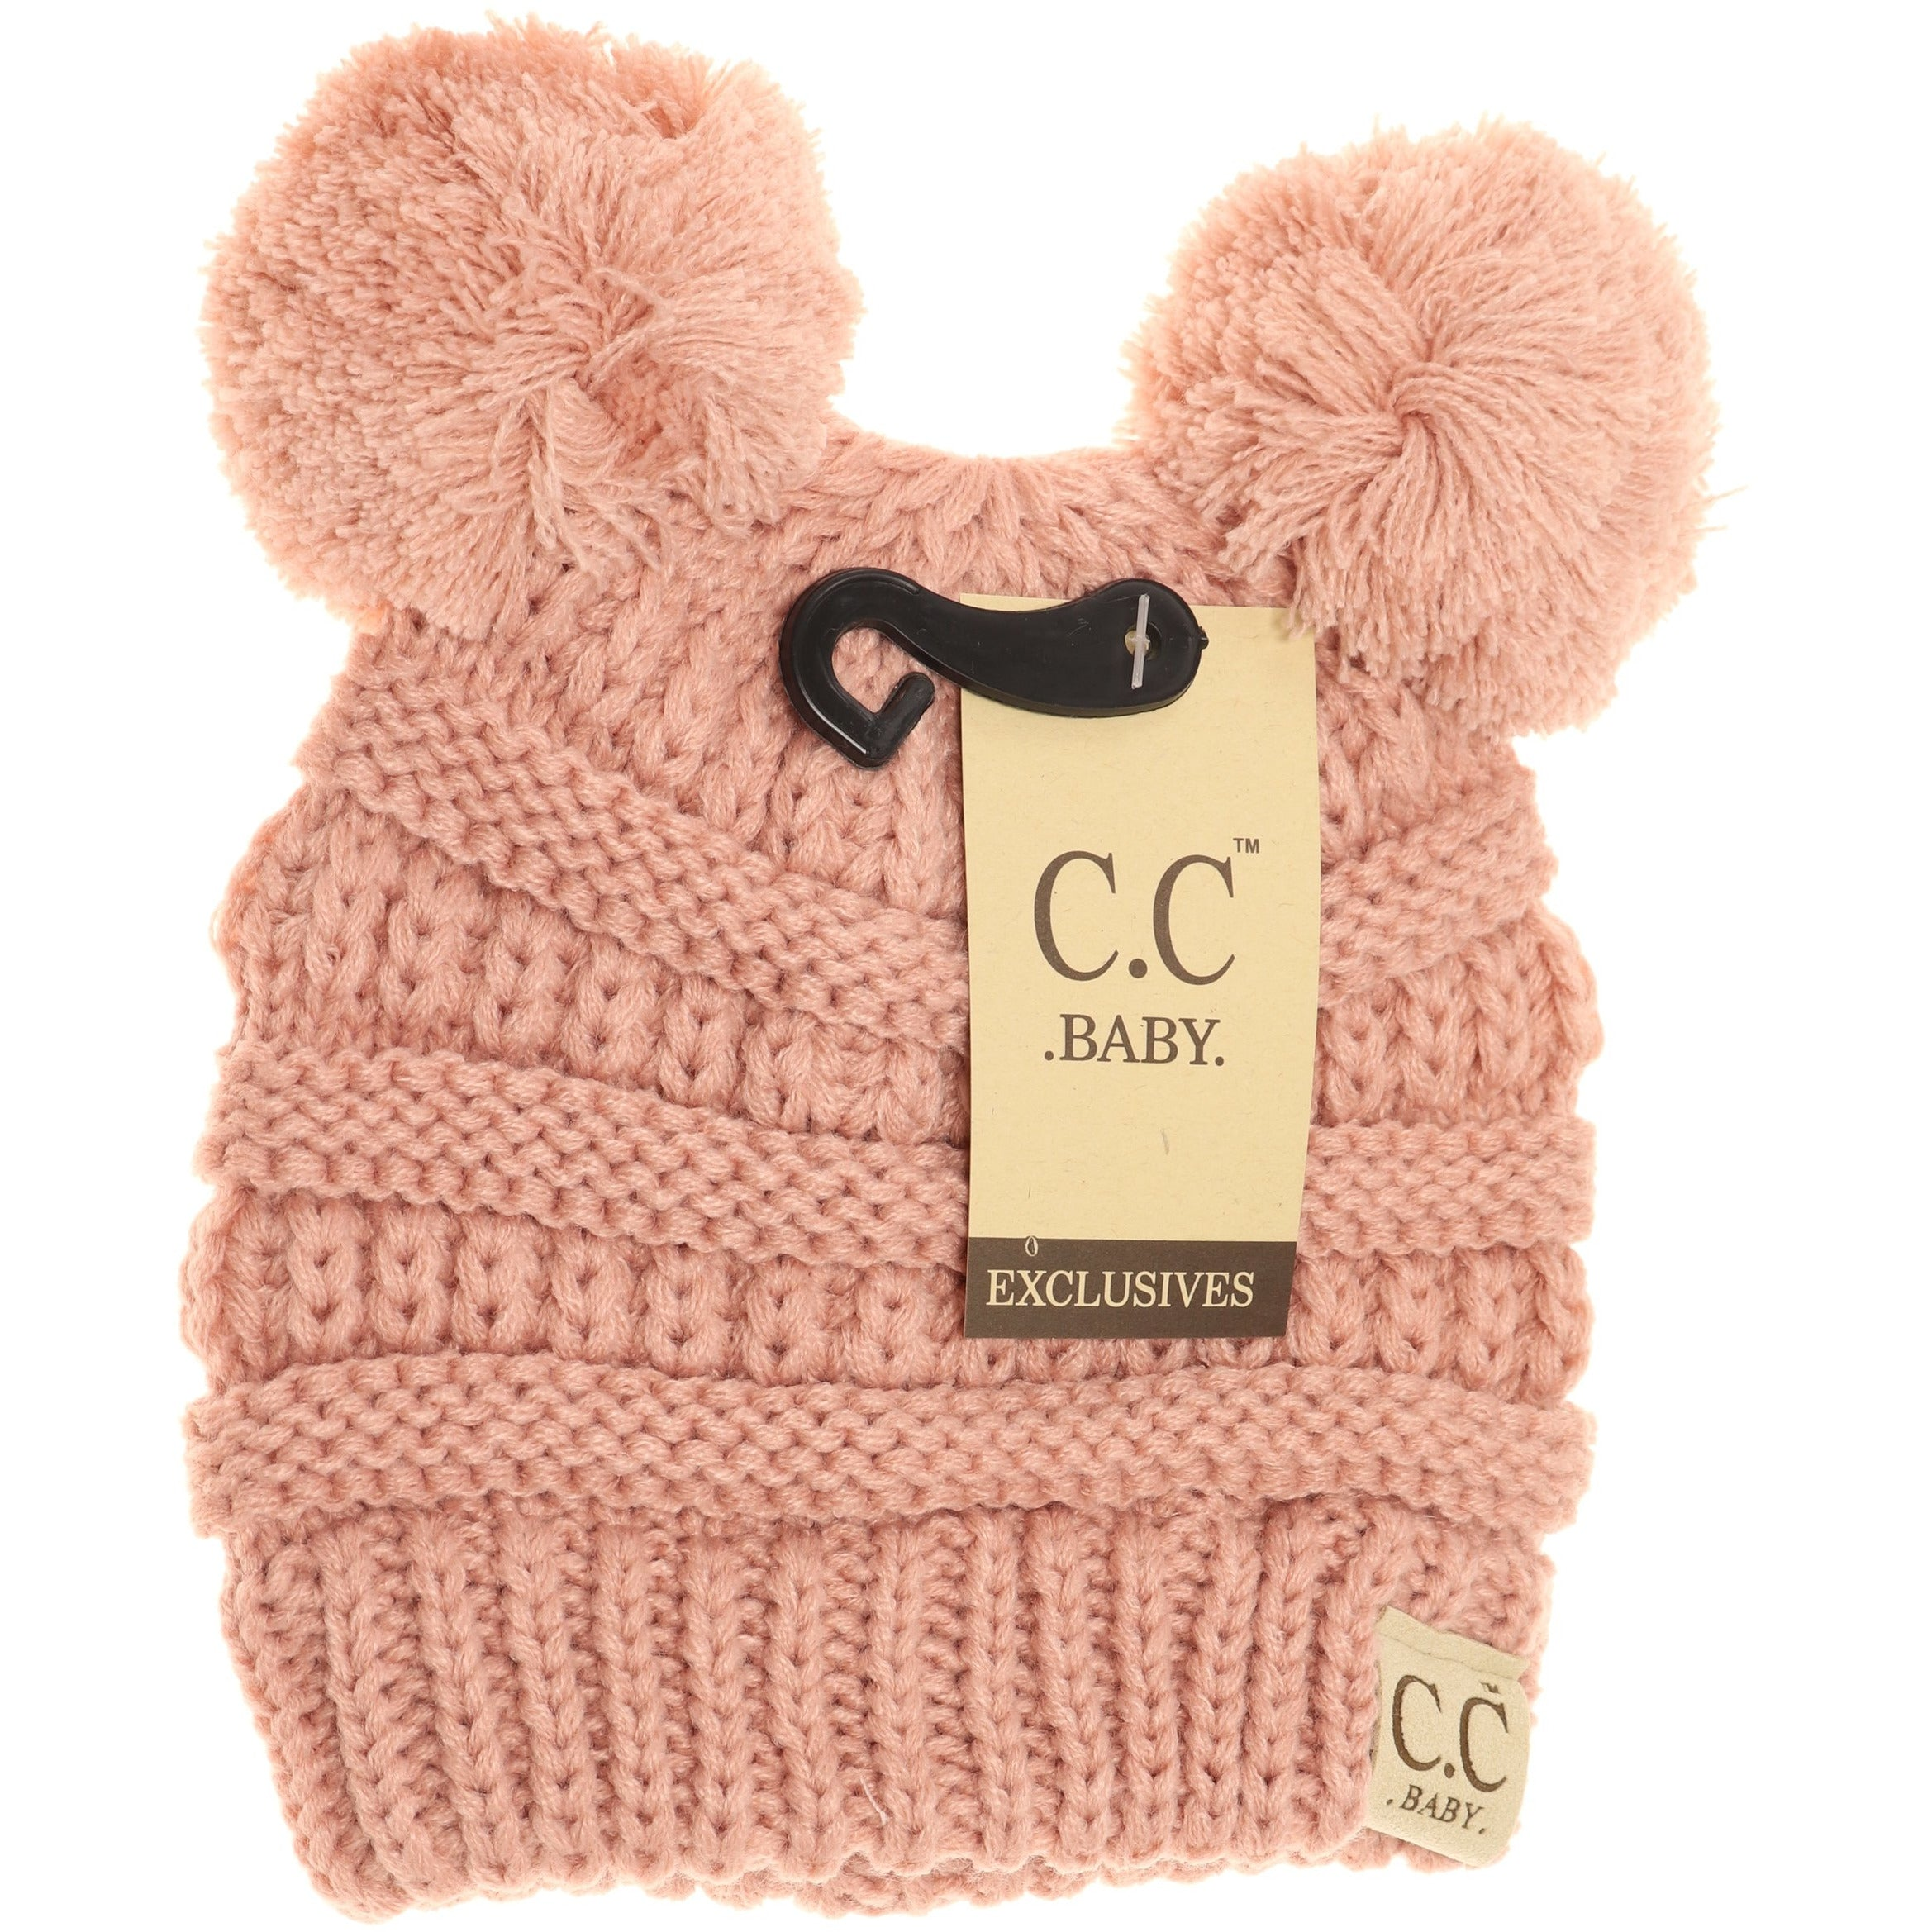 Monogrammed Baby CC Beanie Solid Double Pom Infant Winter Hat